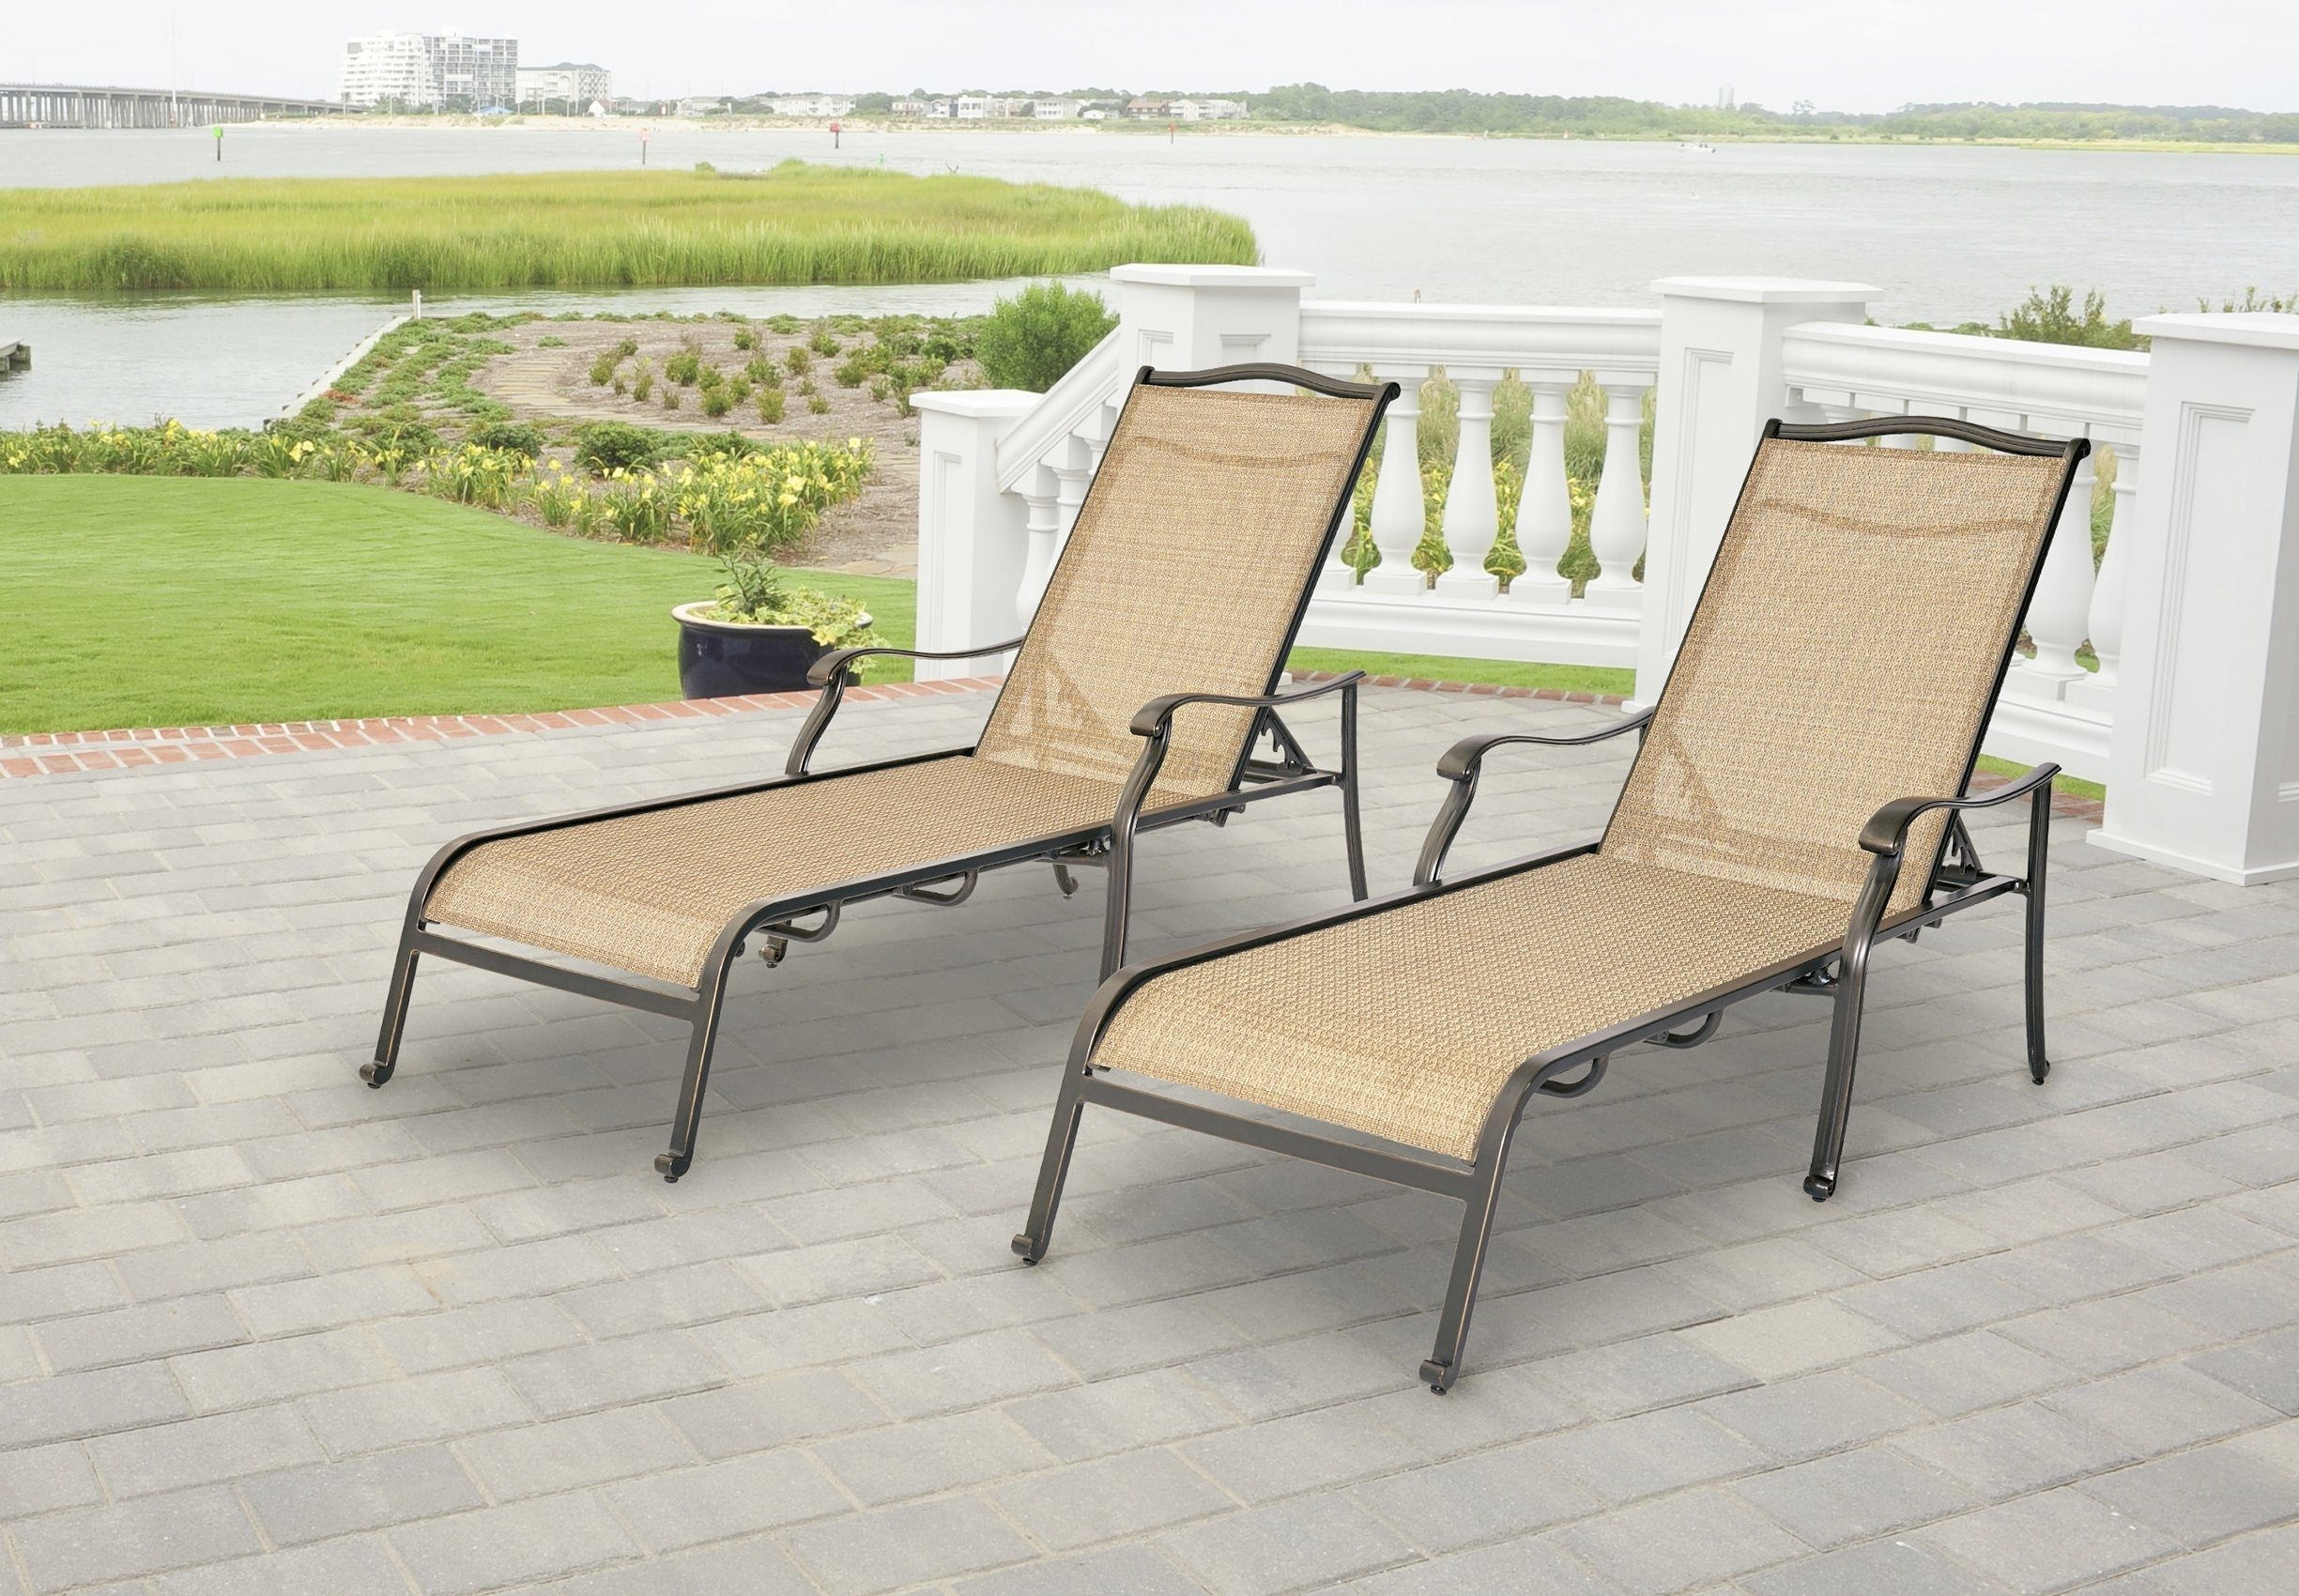 Lounge Chairs Under 100 Patio Chaise Lounge Chairs Under 100 Patio Furniture